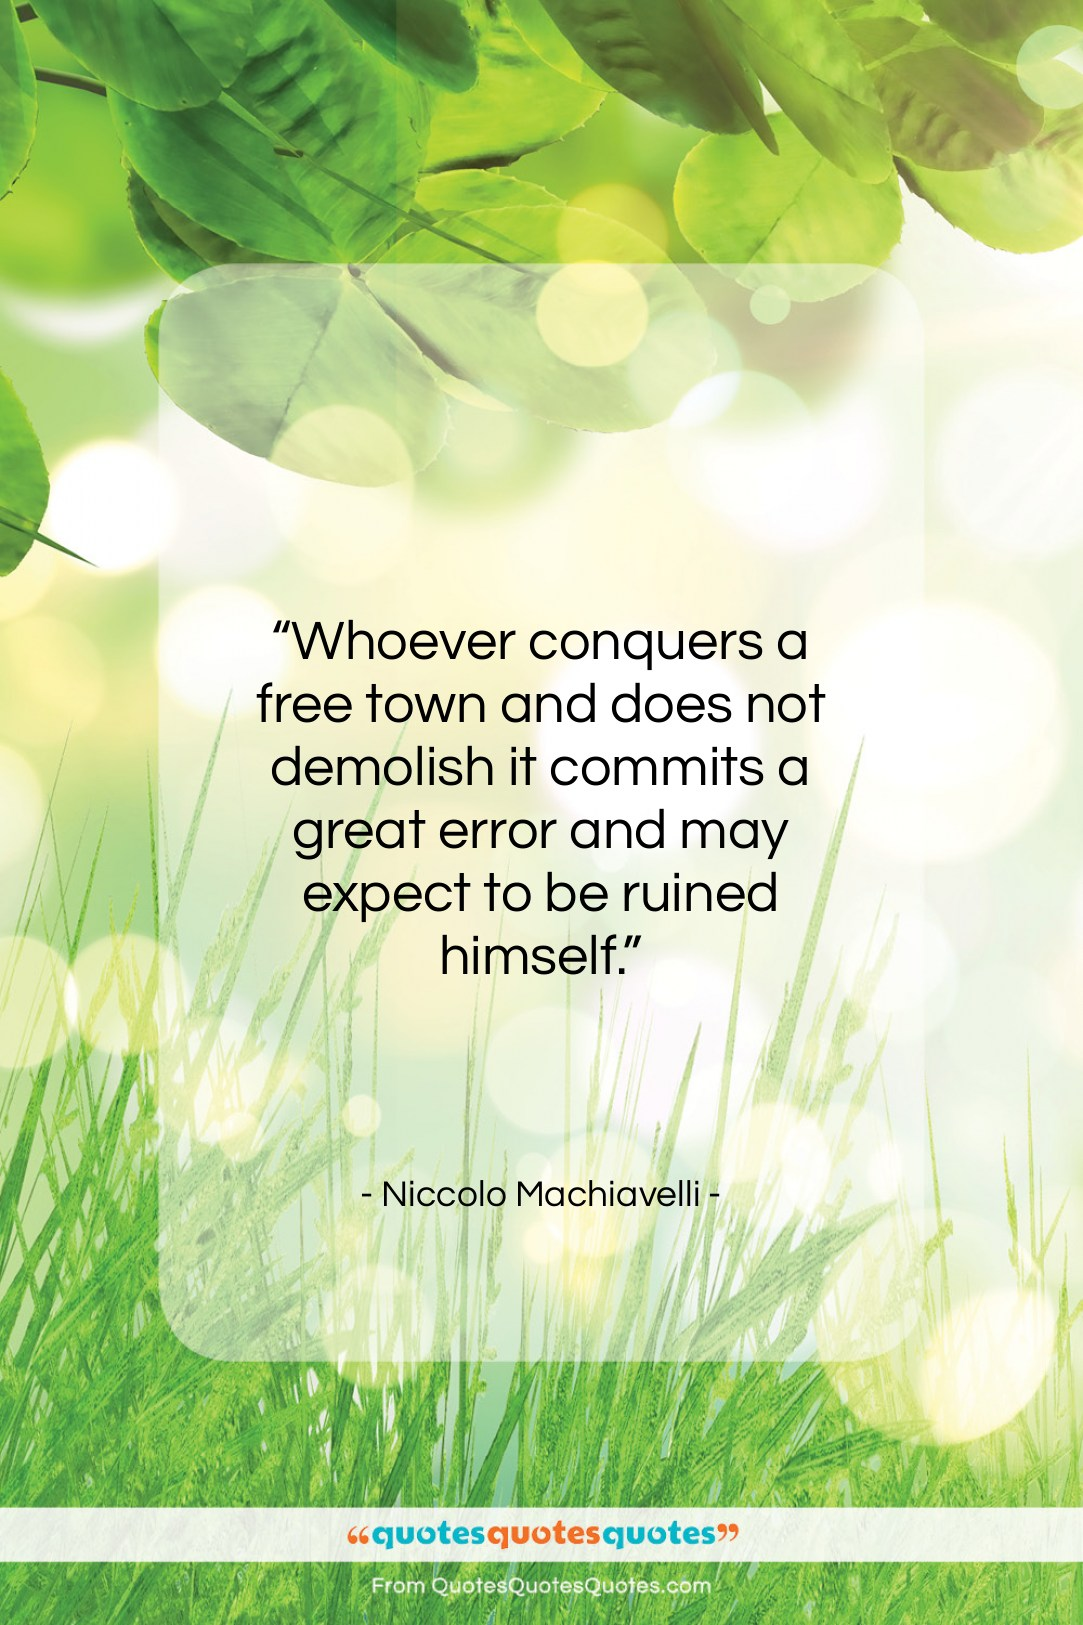 """Niccolo Machiavelli quote: """"Whoever conquers a free town and does…""""- at QuotesQuotesQuotes.com"""